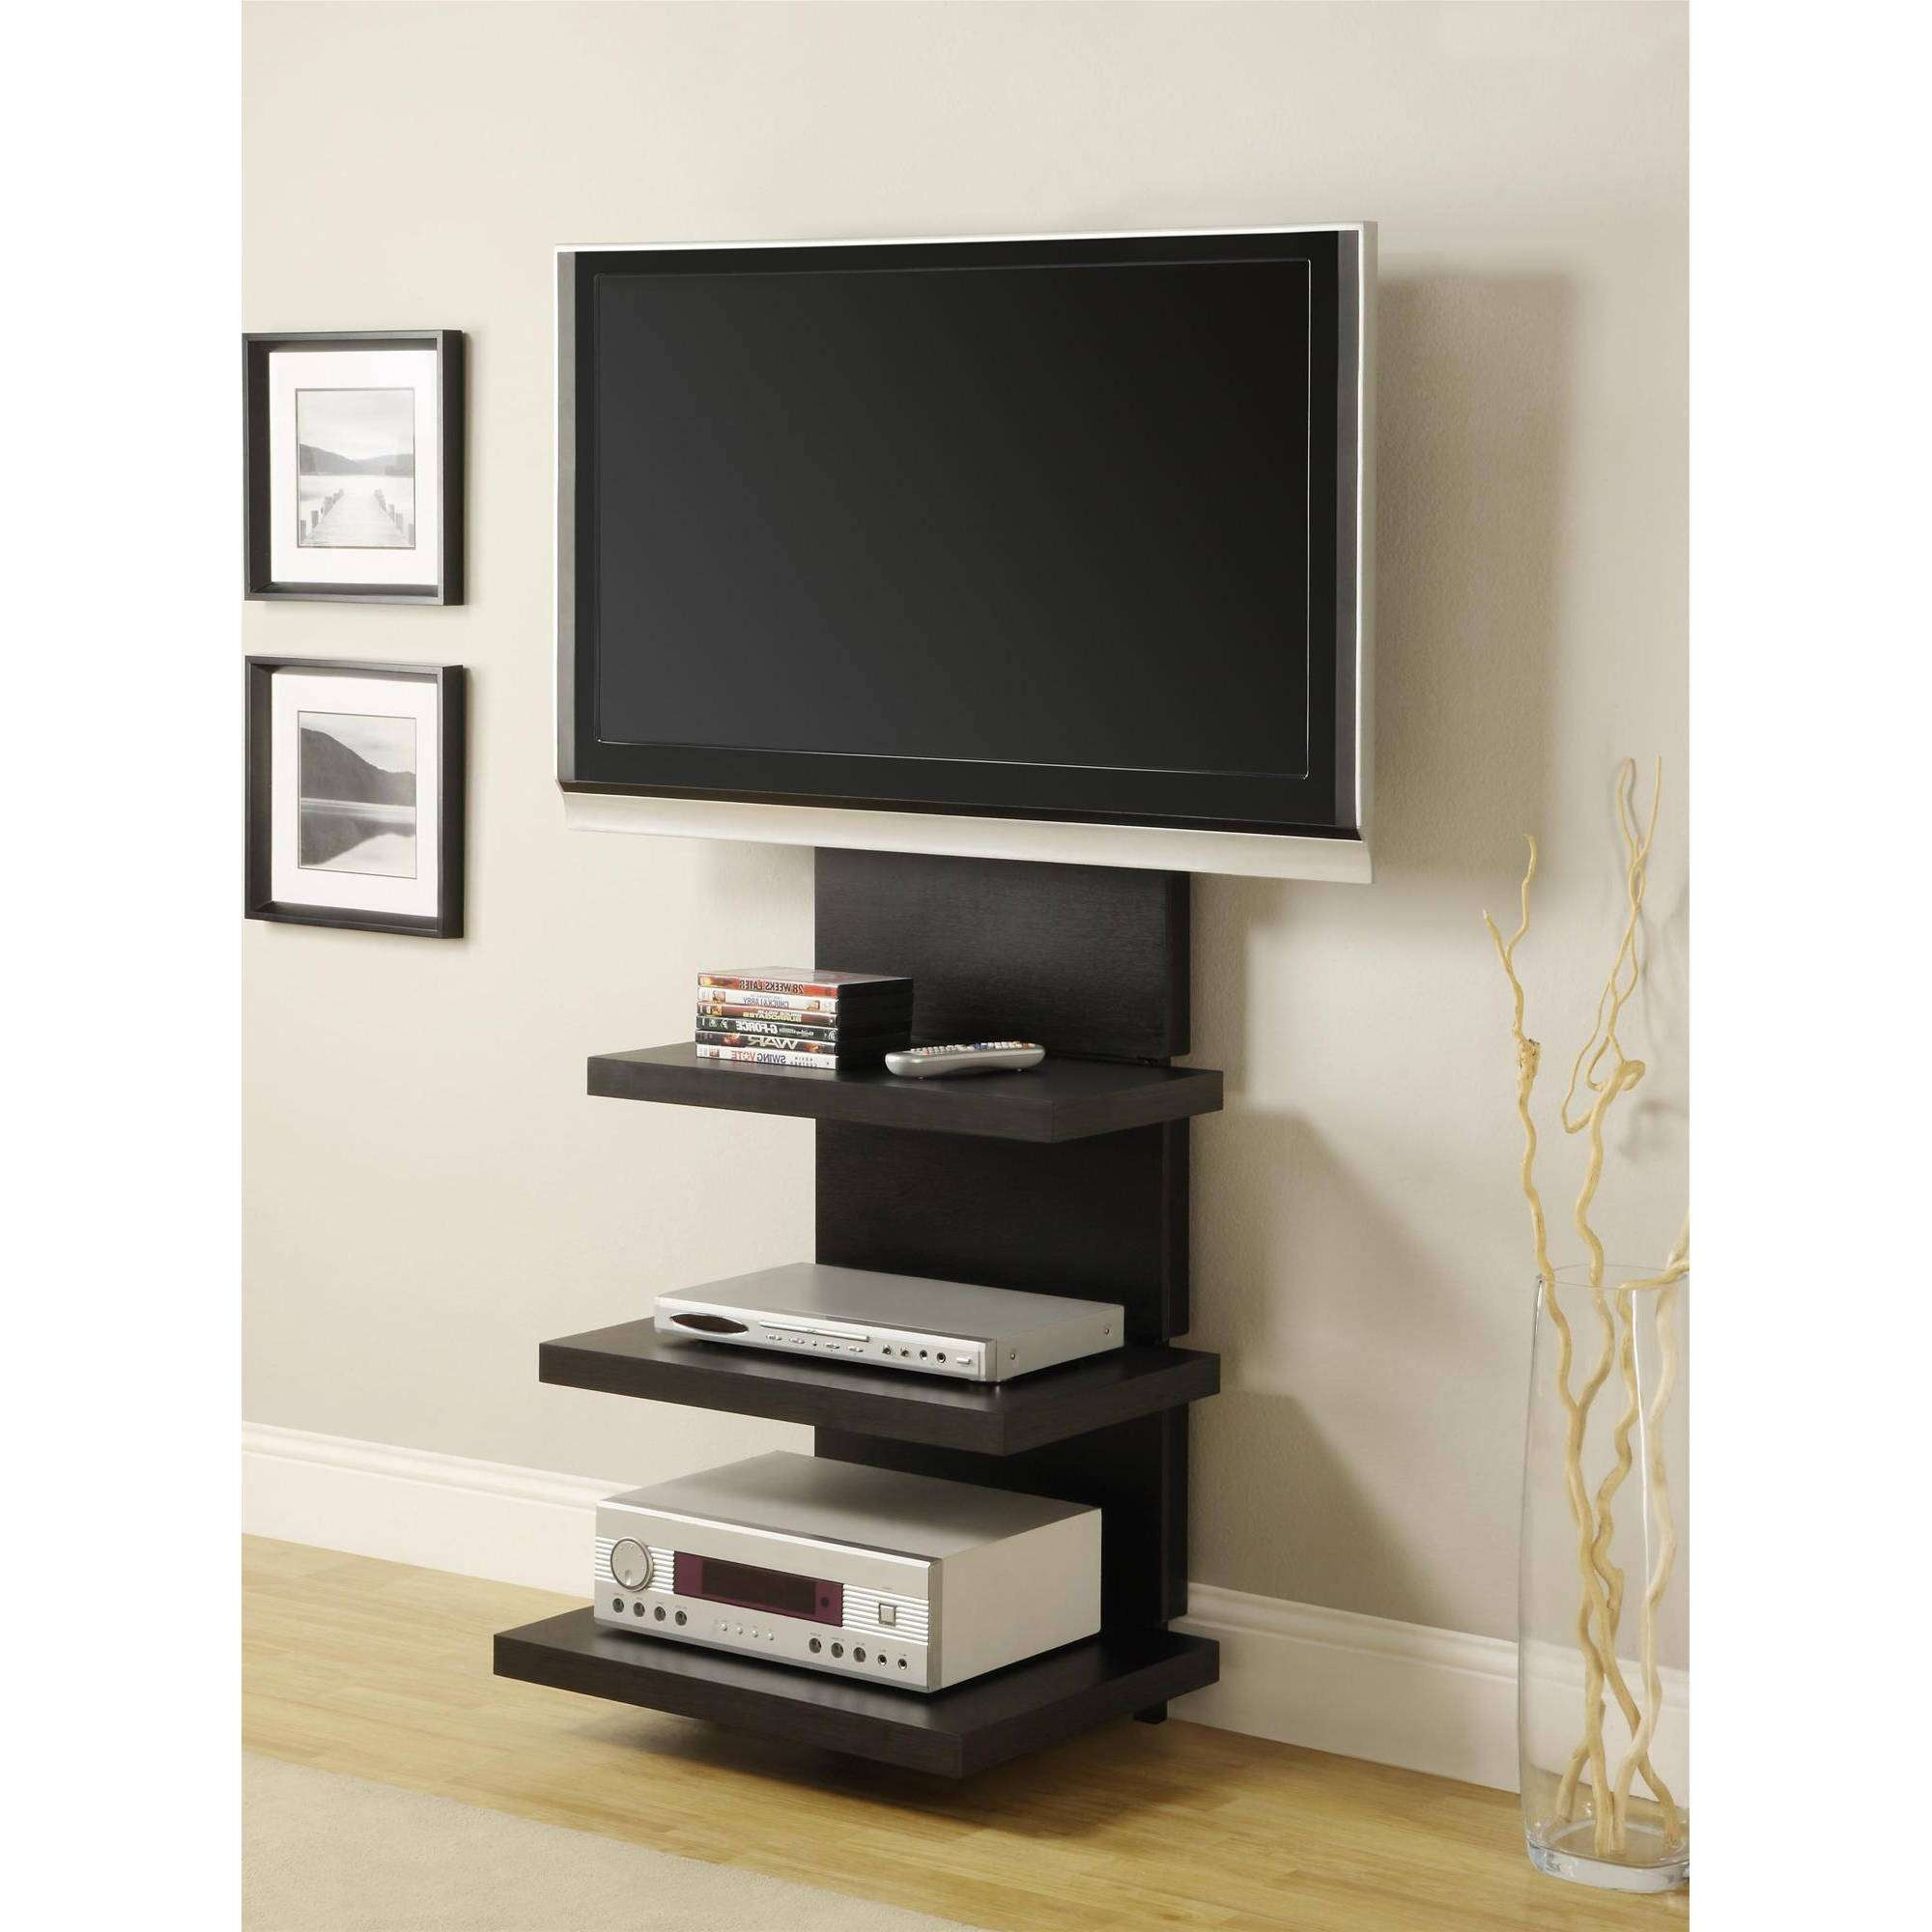 Ameriwood Home Elevation Altramount Tv Stand For Tvs Up To 60 Throughout Tall Skinny Tv Stands (View 1 of 15)